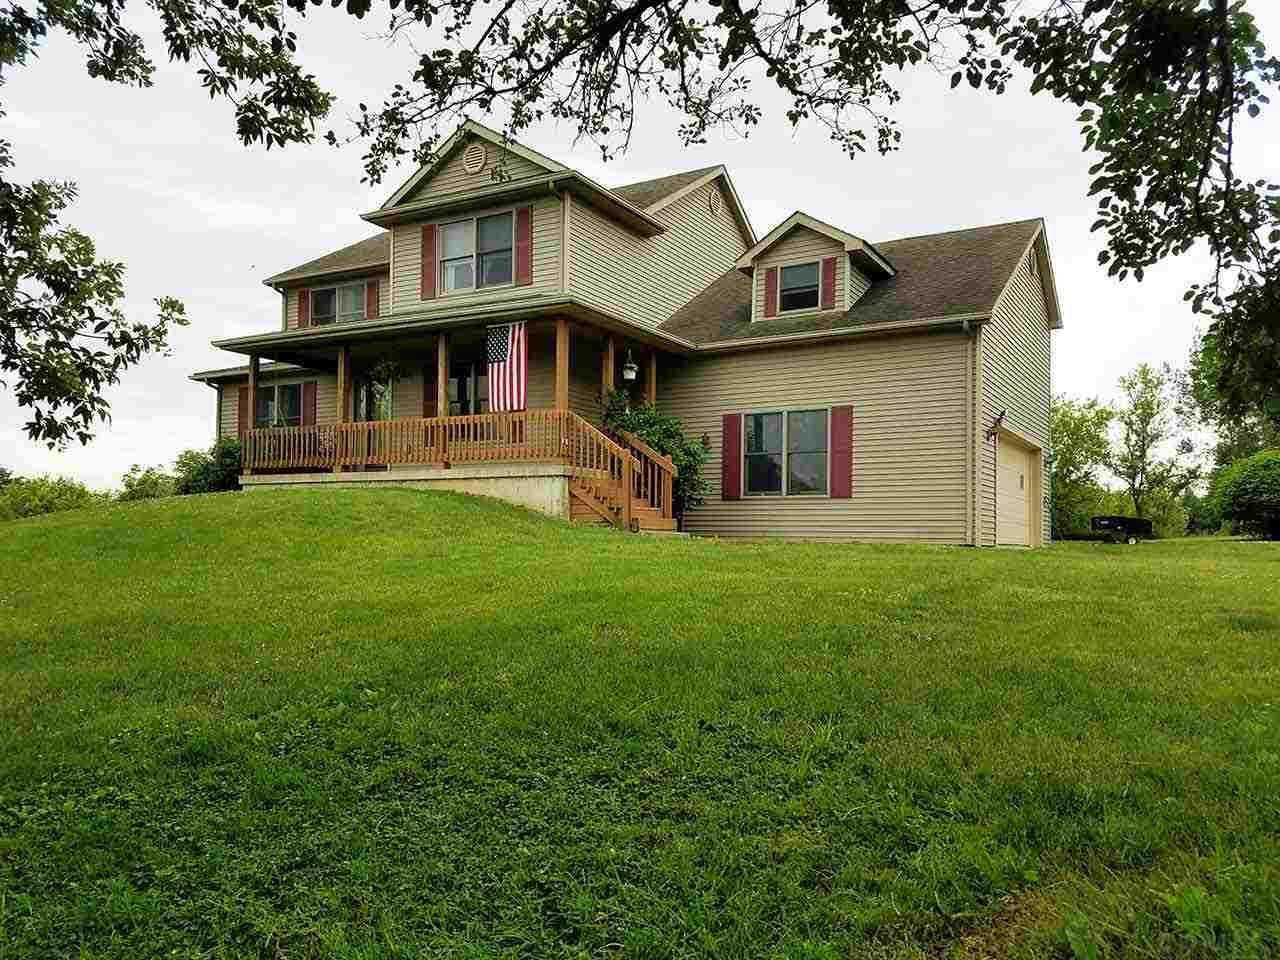 849 E Bellefontaine Rd, Pleasant Lake, IN 46779